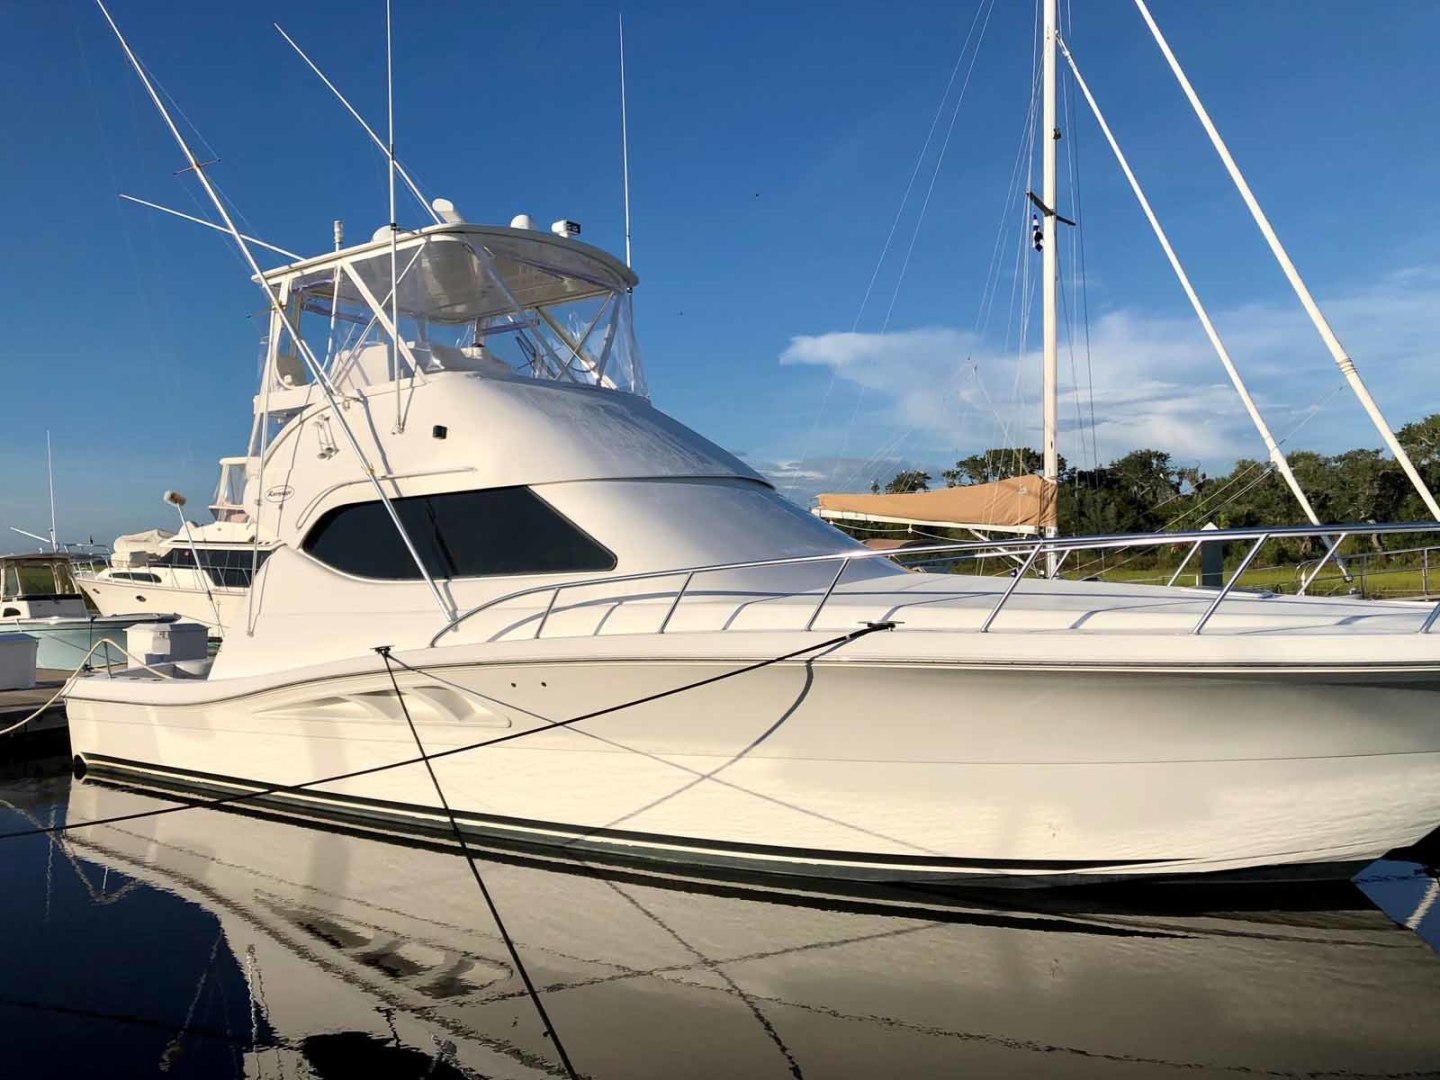 Rampage-45 SF 2004-MY DOLLY Ft. Lauderdale-Florida-United States-Starboard Side-1464084 | Thumbnail